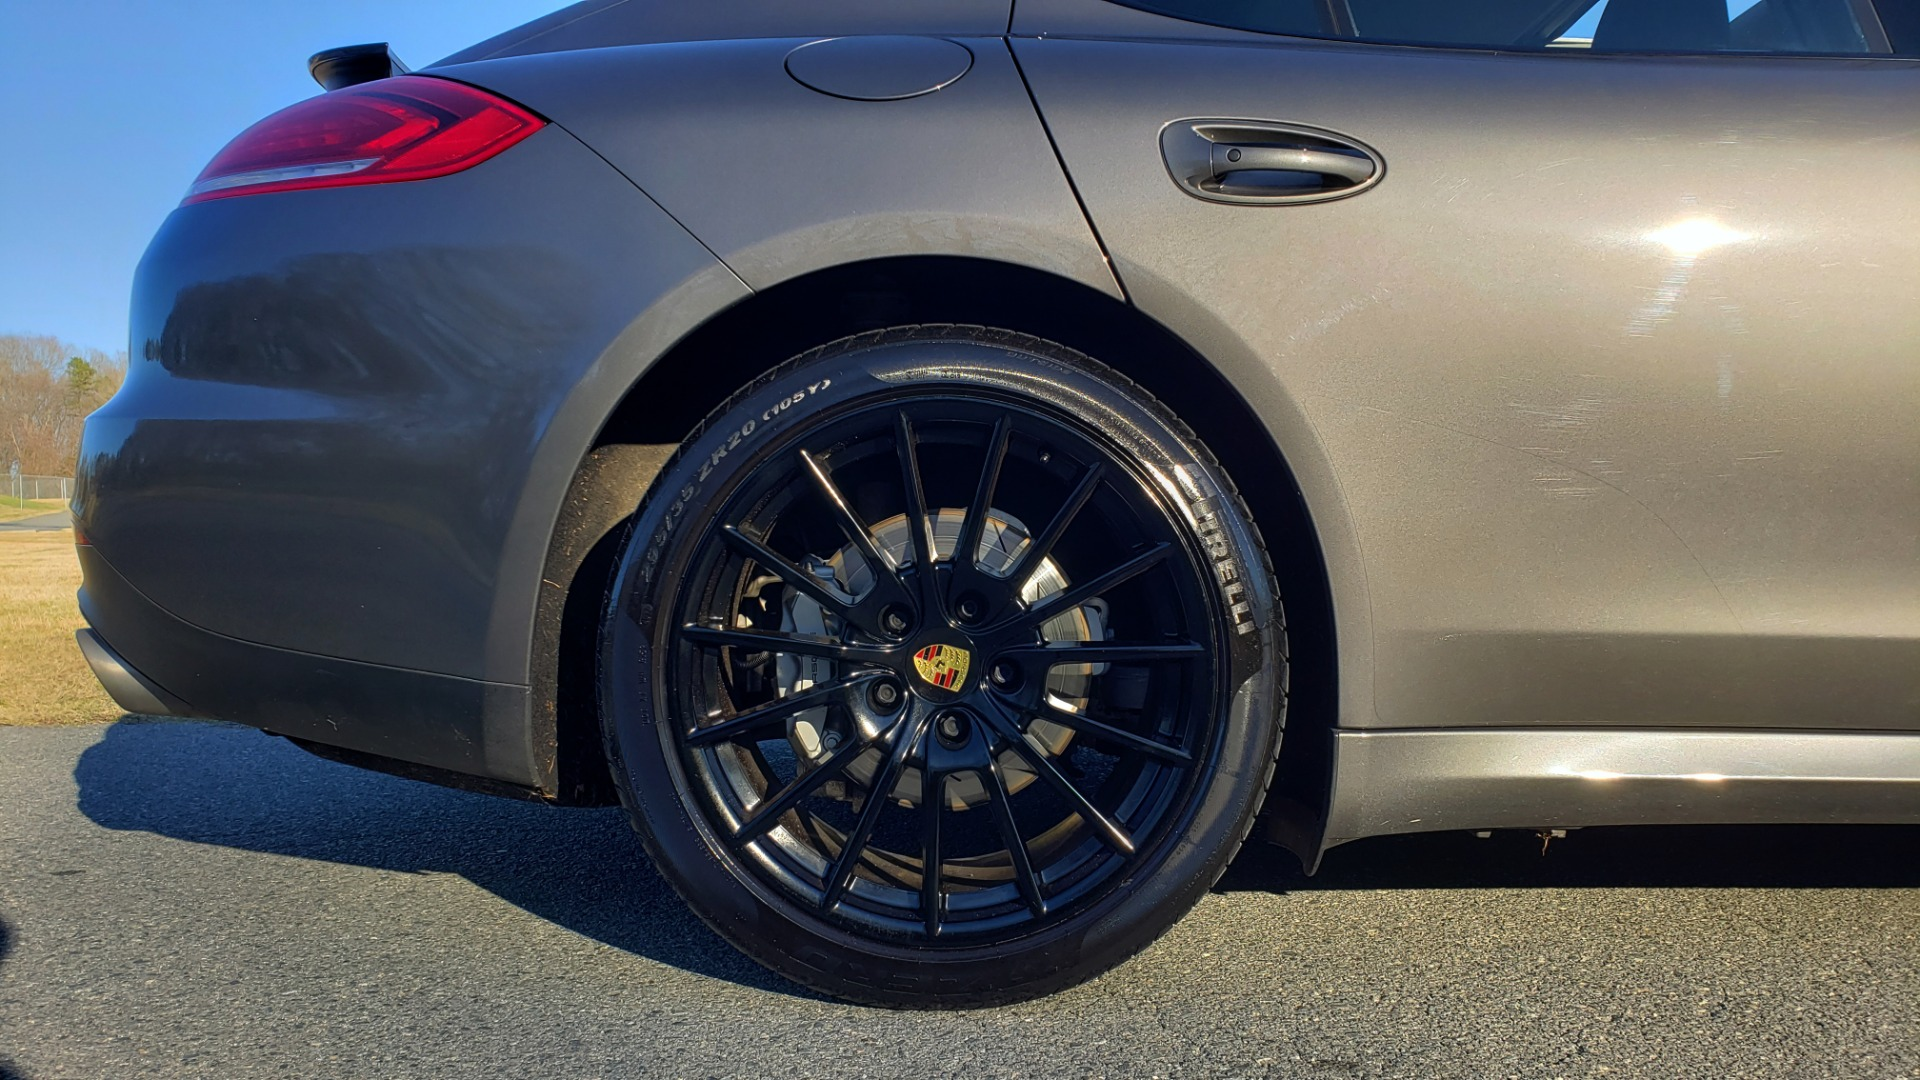 Used 2016 Porsche PANAMERA S / TURBO V6 / PDK / NAV / BOSE / SNRF / LDW / REARVIEW for sale Sold at Formula Imports in Charlotte NC 28227 97